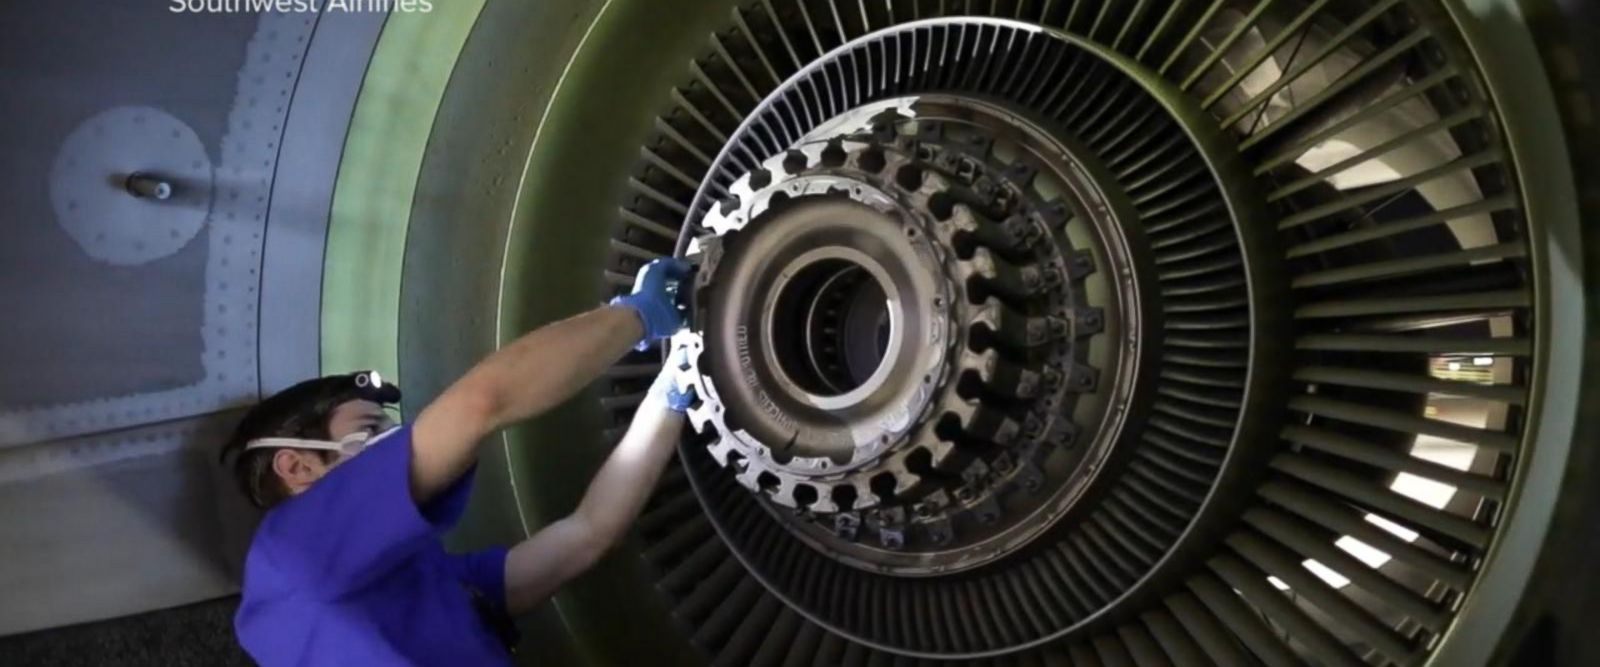 VIDEO: FAA issues rare emergency directive after fatal Southwest engine failure